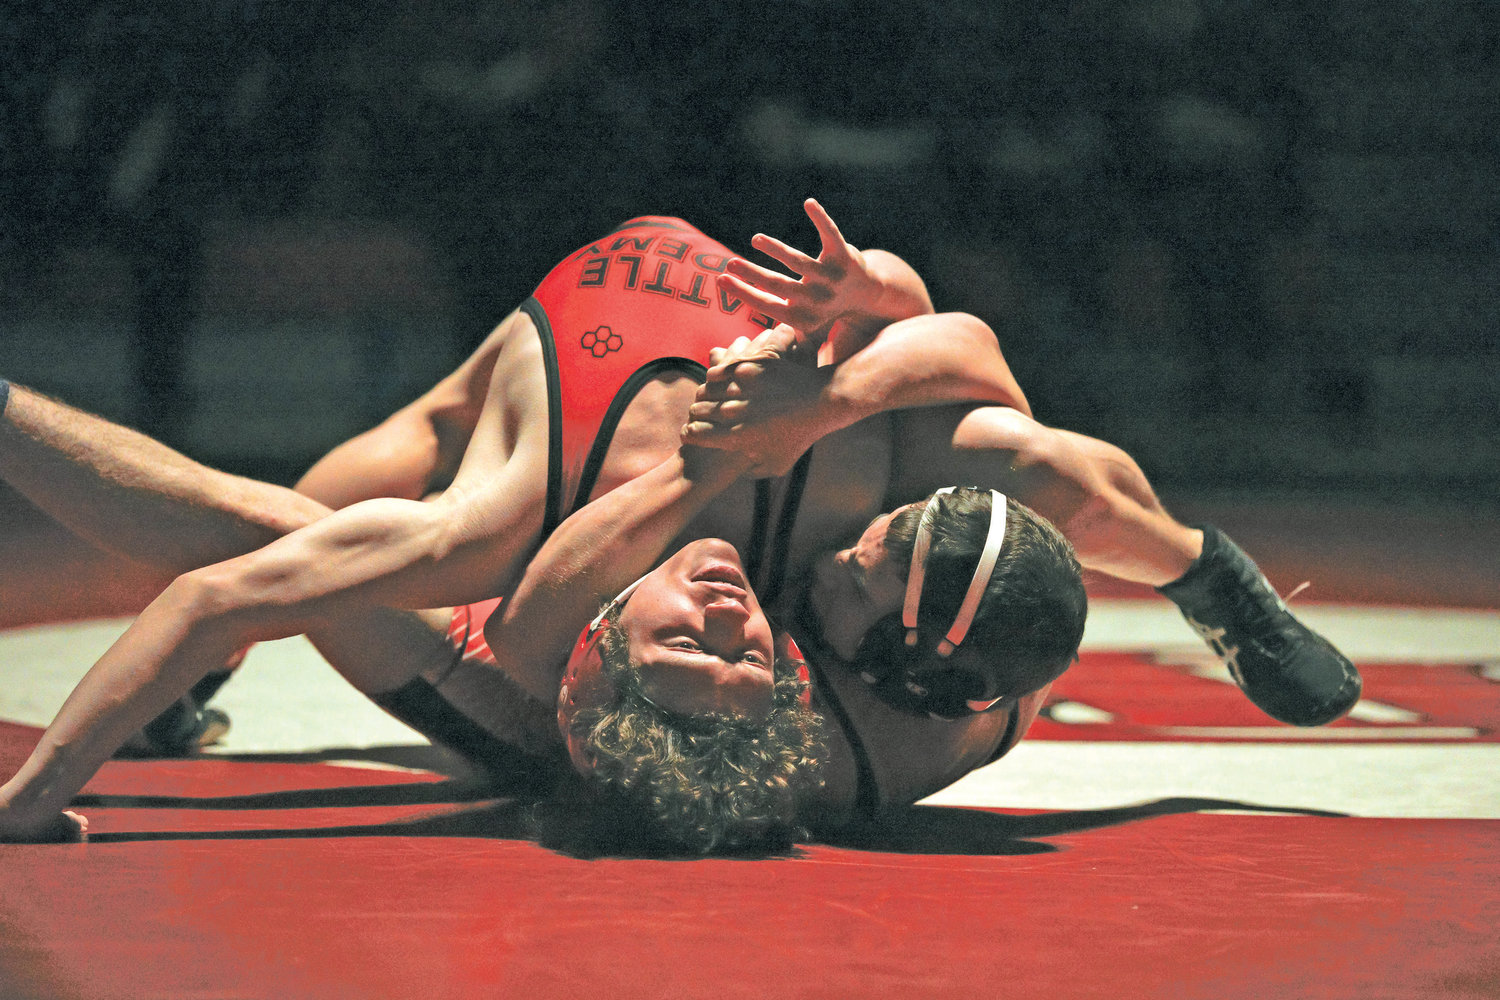 Redhawks wrestler, Ike Banks (bottom), locks his opponent's head and knee together and spreads him open while rolling back to pick up the fall-points.